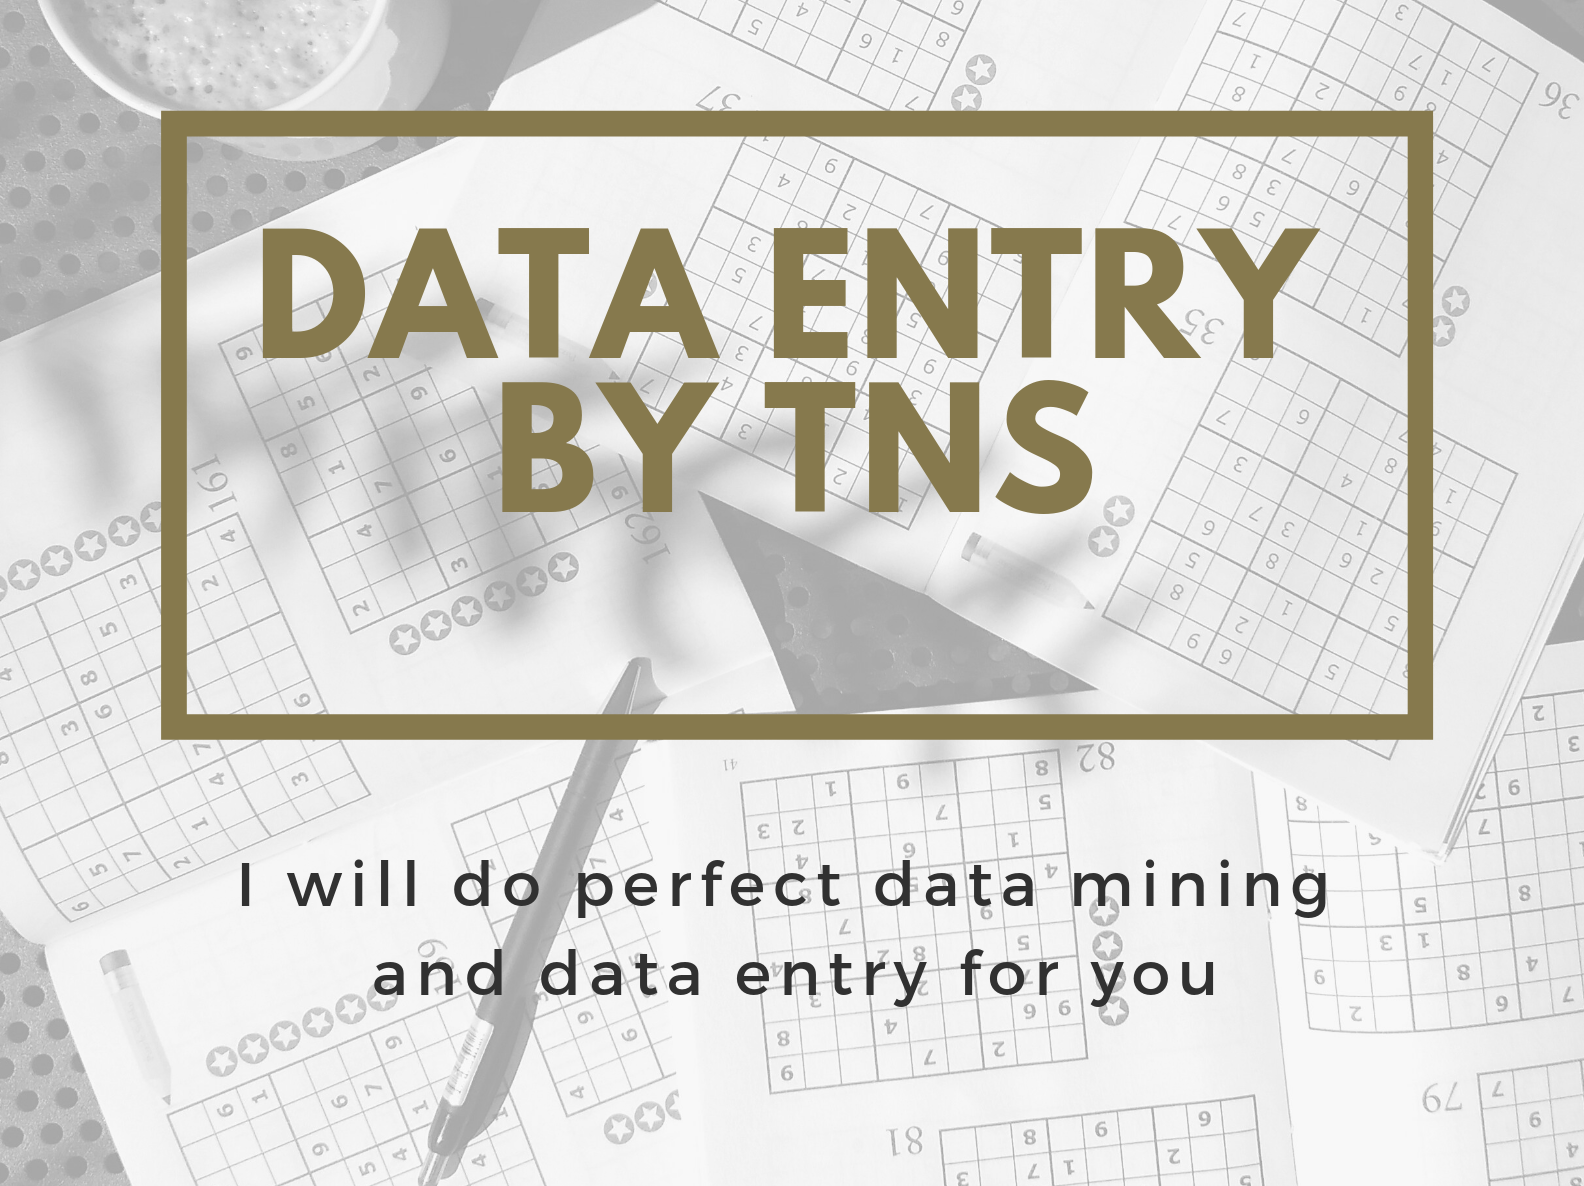 Precise data mining,  entry and analysis with certified typing skill